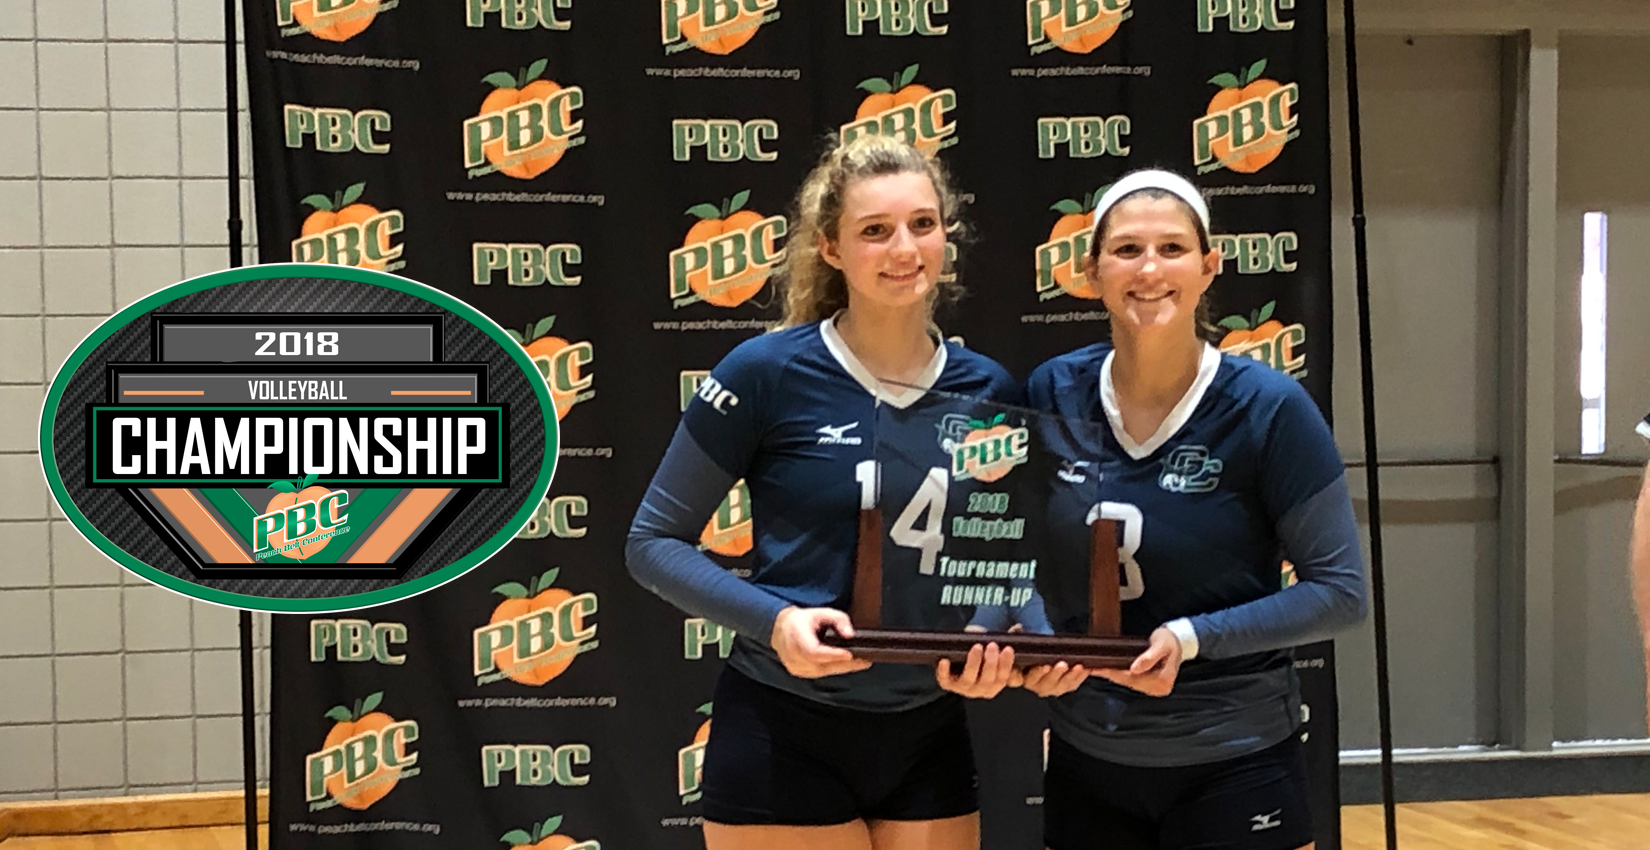 PBC All-Tournament honorees Libby Bochniak and Kayla Brockway